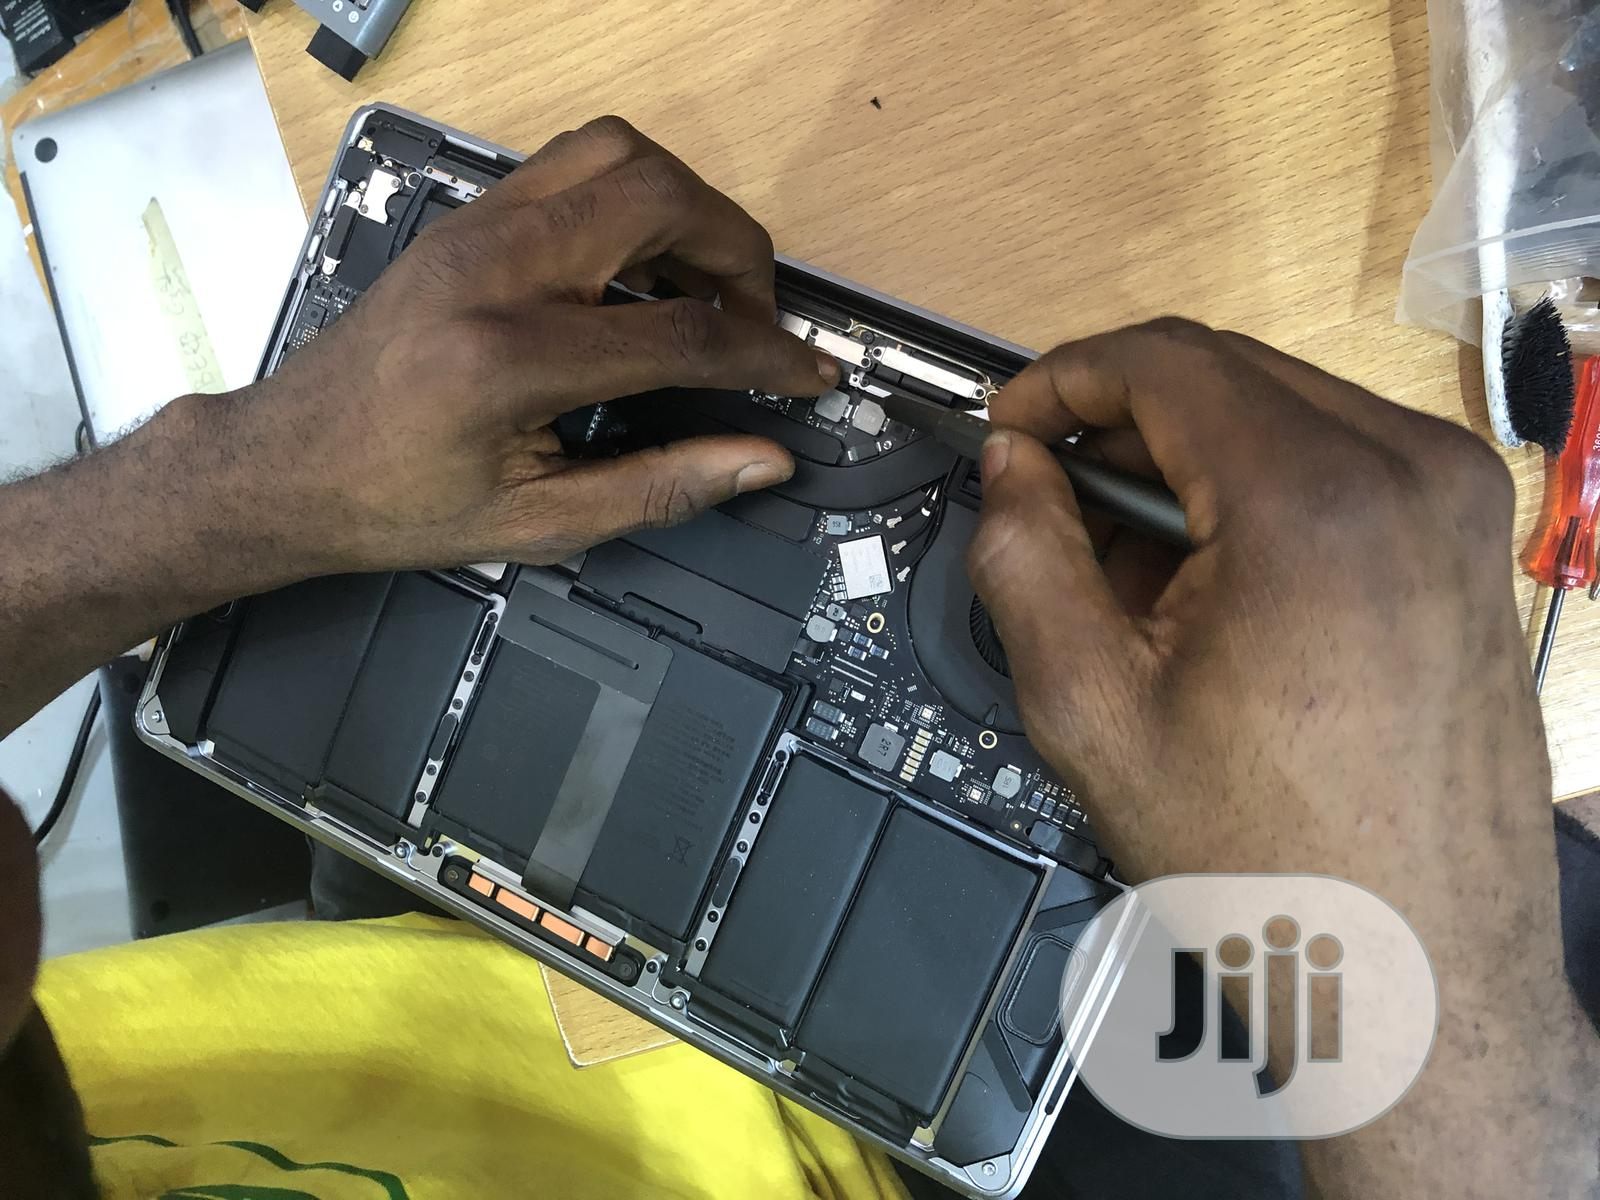 Archive: Macbook Repairs